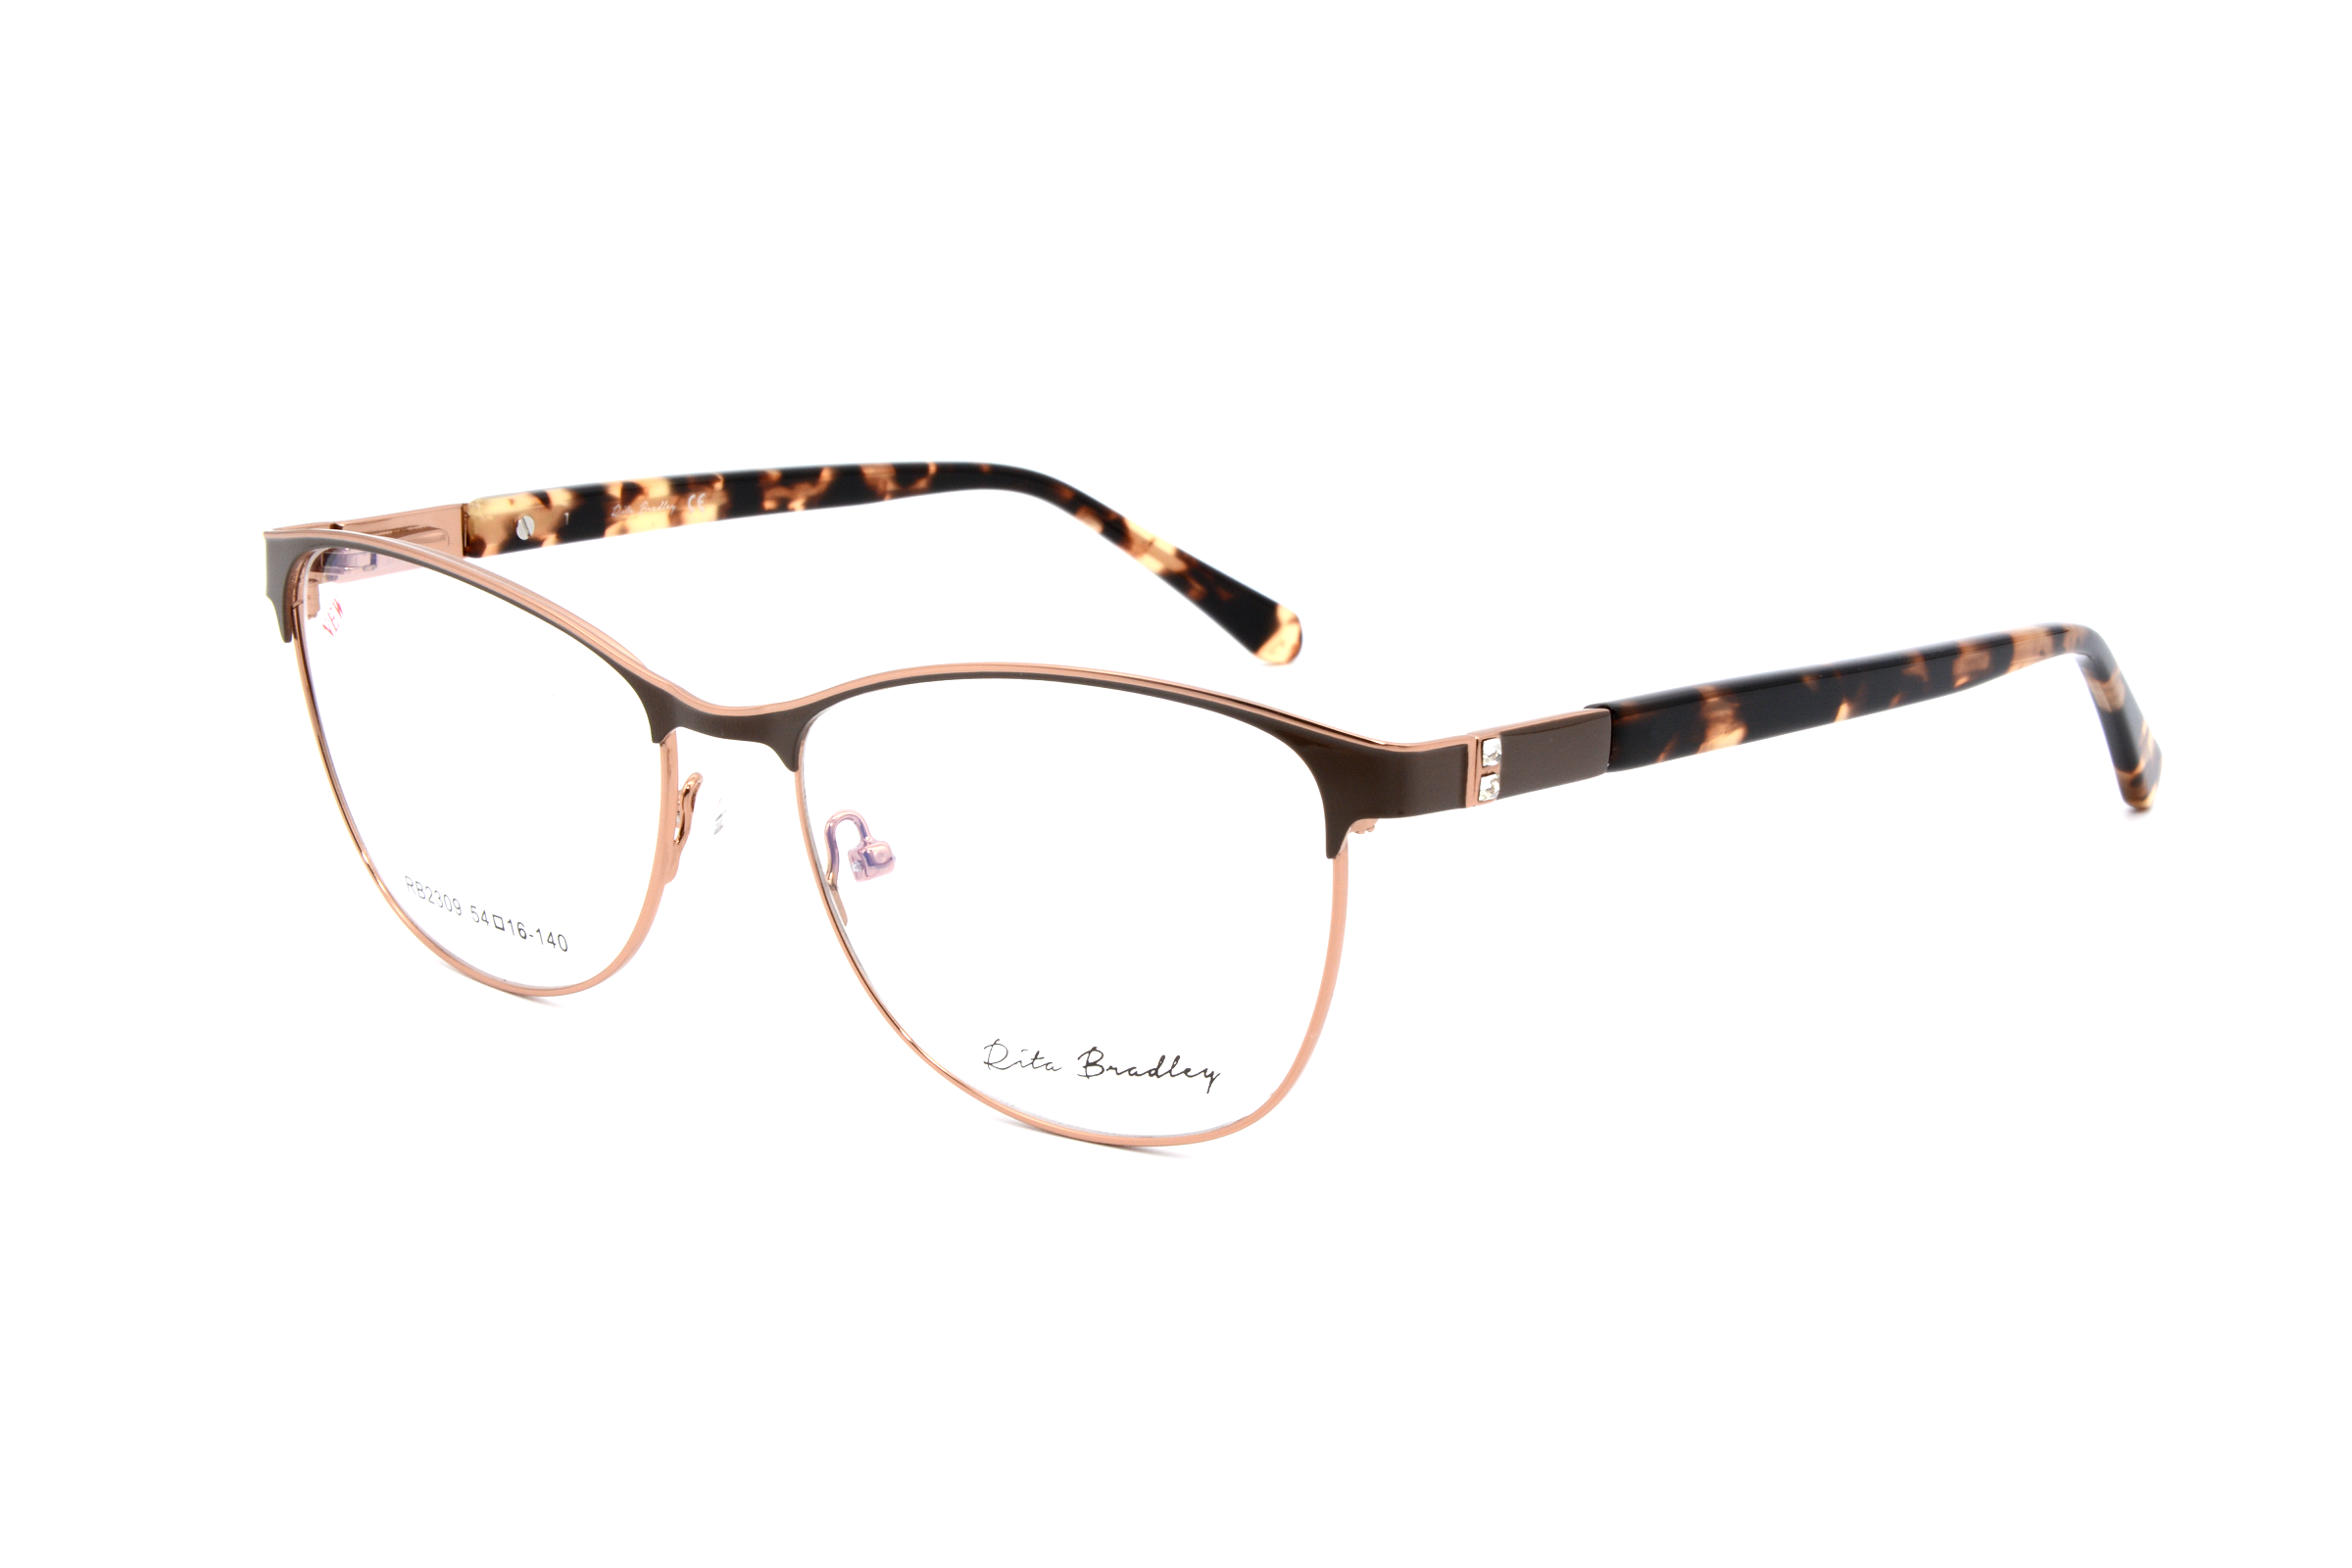 Rita Bradley eyewear 2309, C4 - Optics Trading